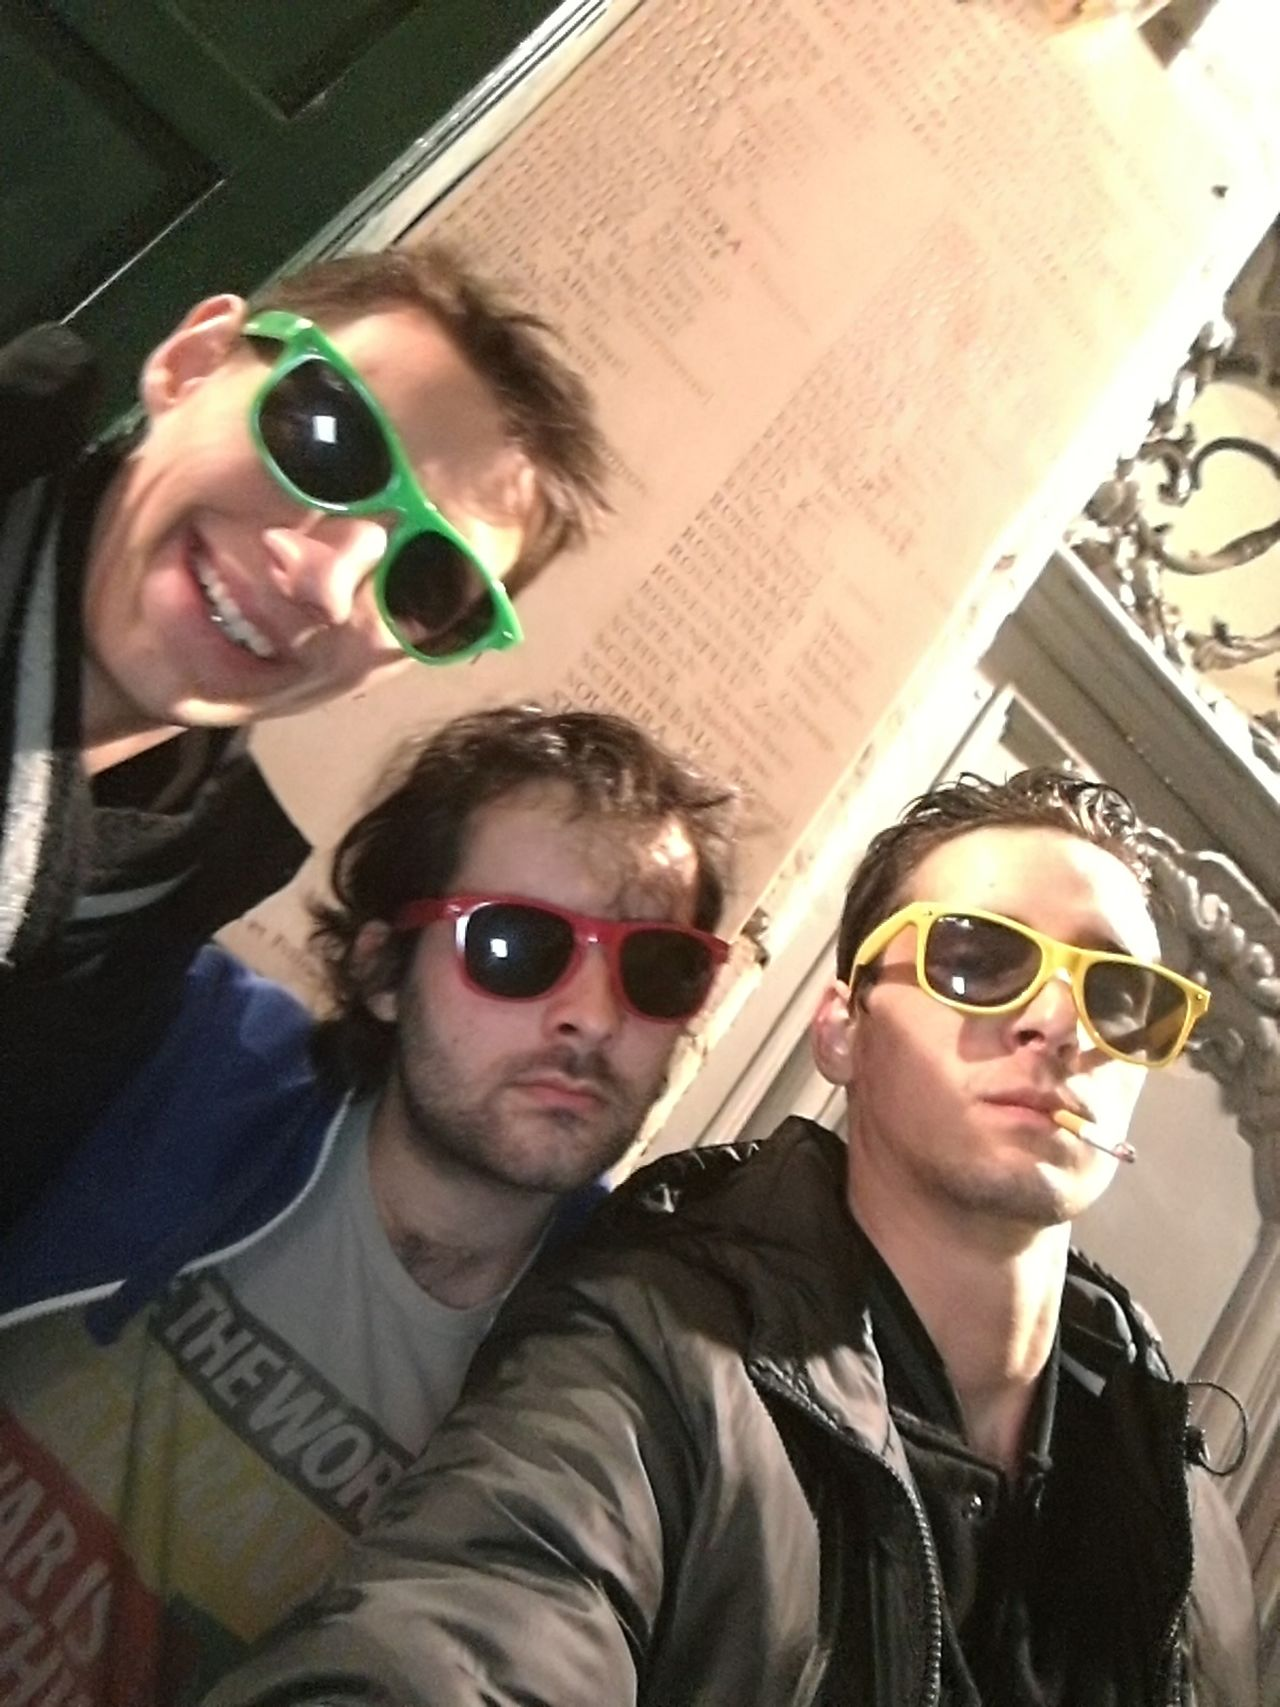 Sunglasses Young Adult Lifestyles Friendship Young Men City Fun Men Adults Only Fashion People Cheerful Togetherness Hipster - Person Two People Adult Beard Outdoors City Life Happiness